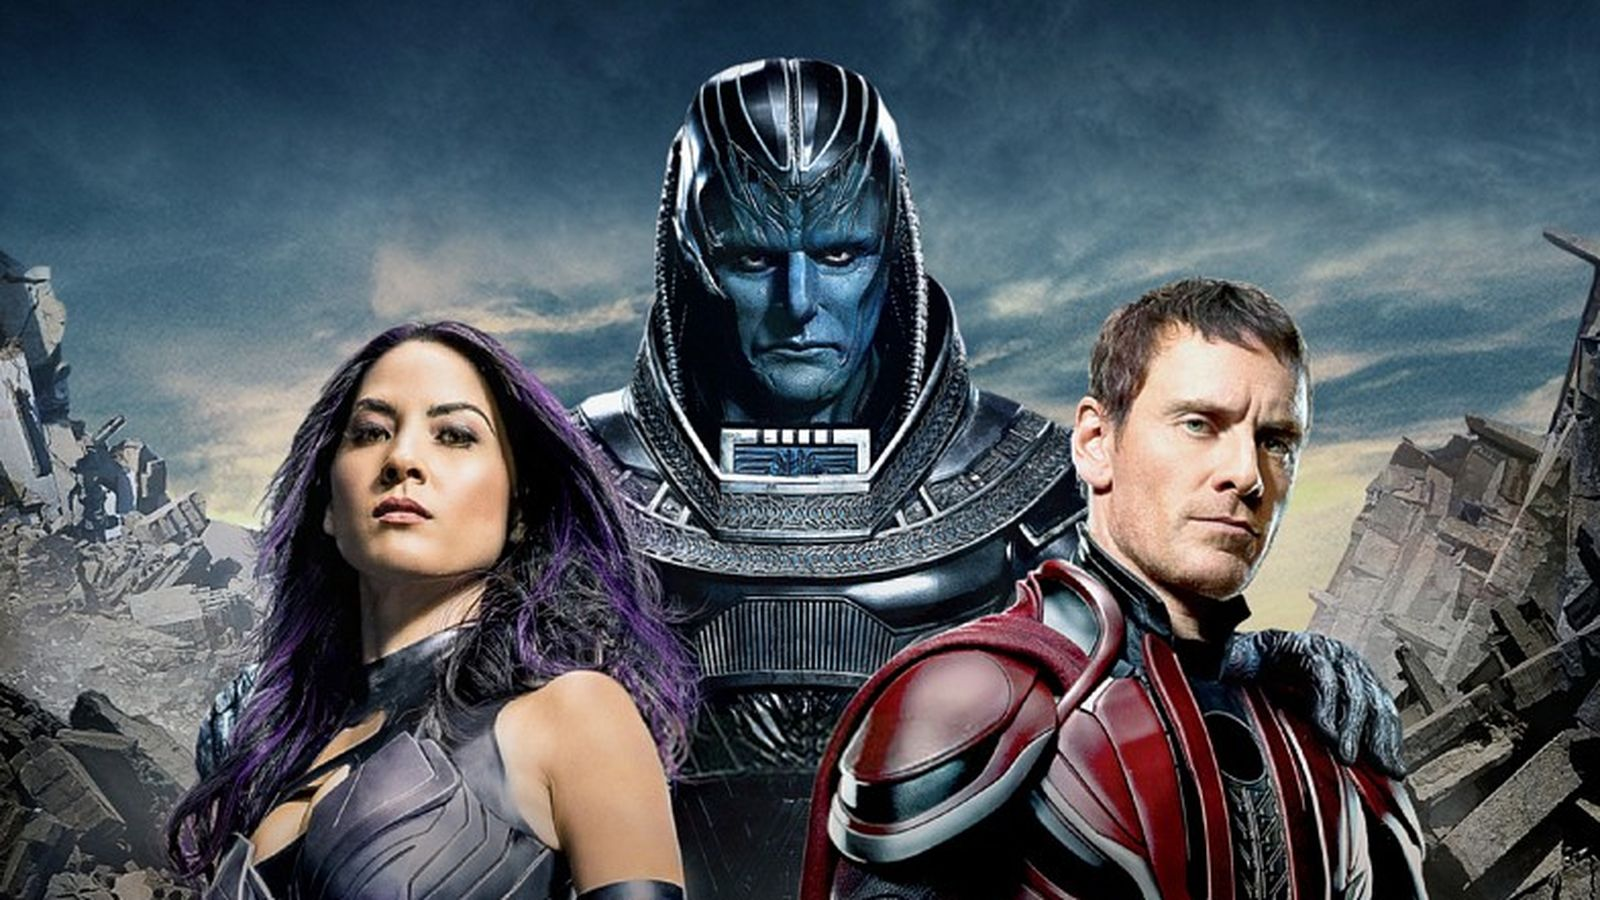 X-Men-Apocalypse-Poster-No-Text.0.0